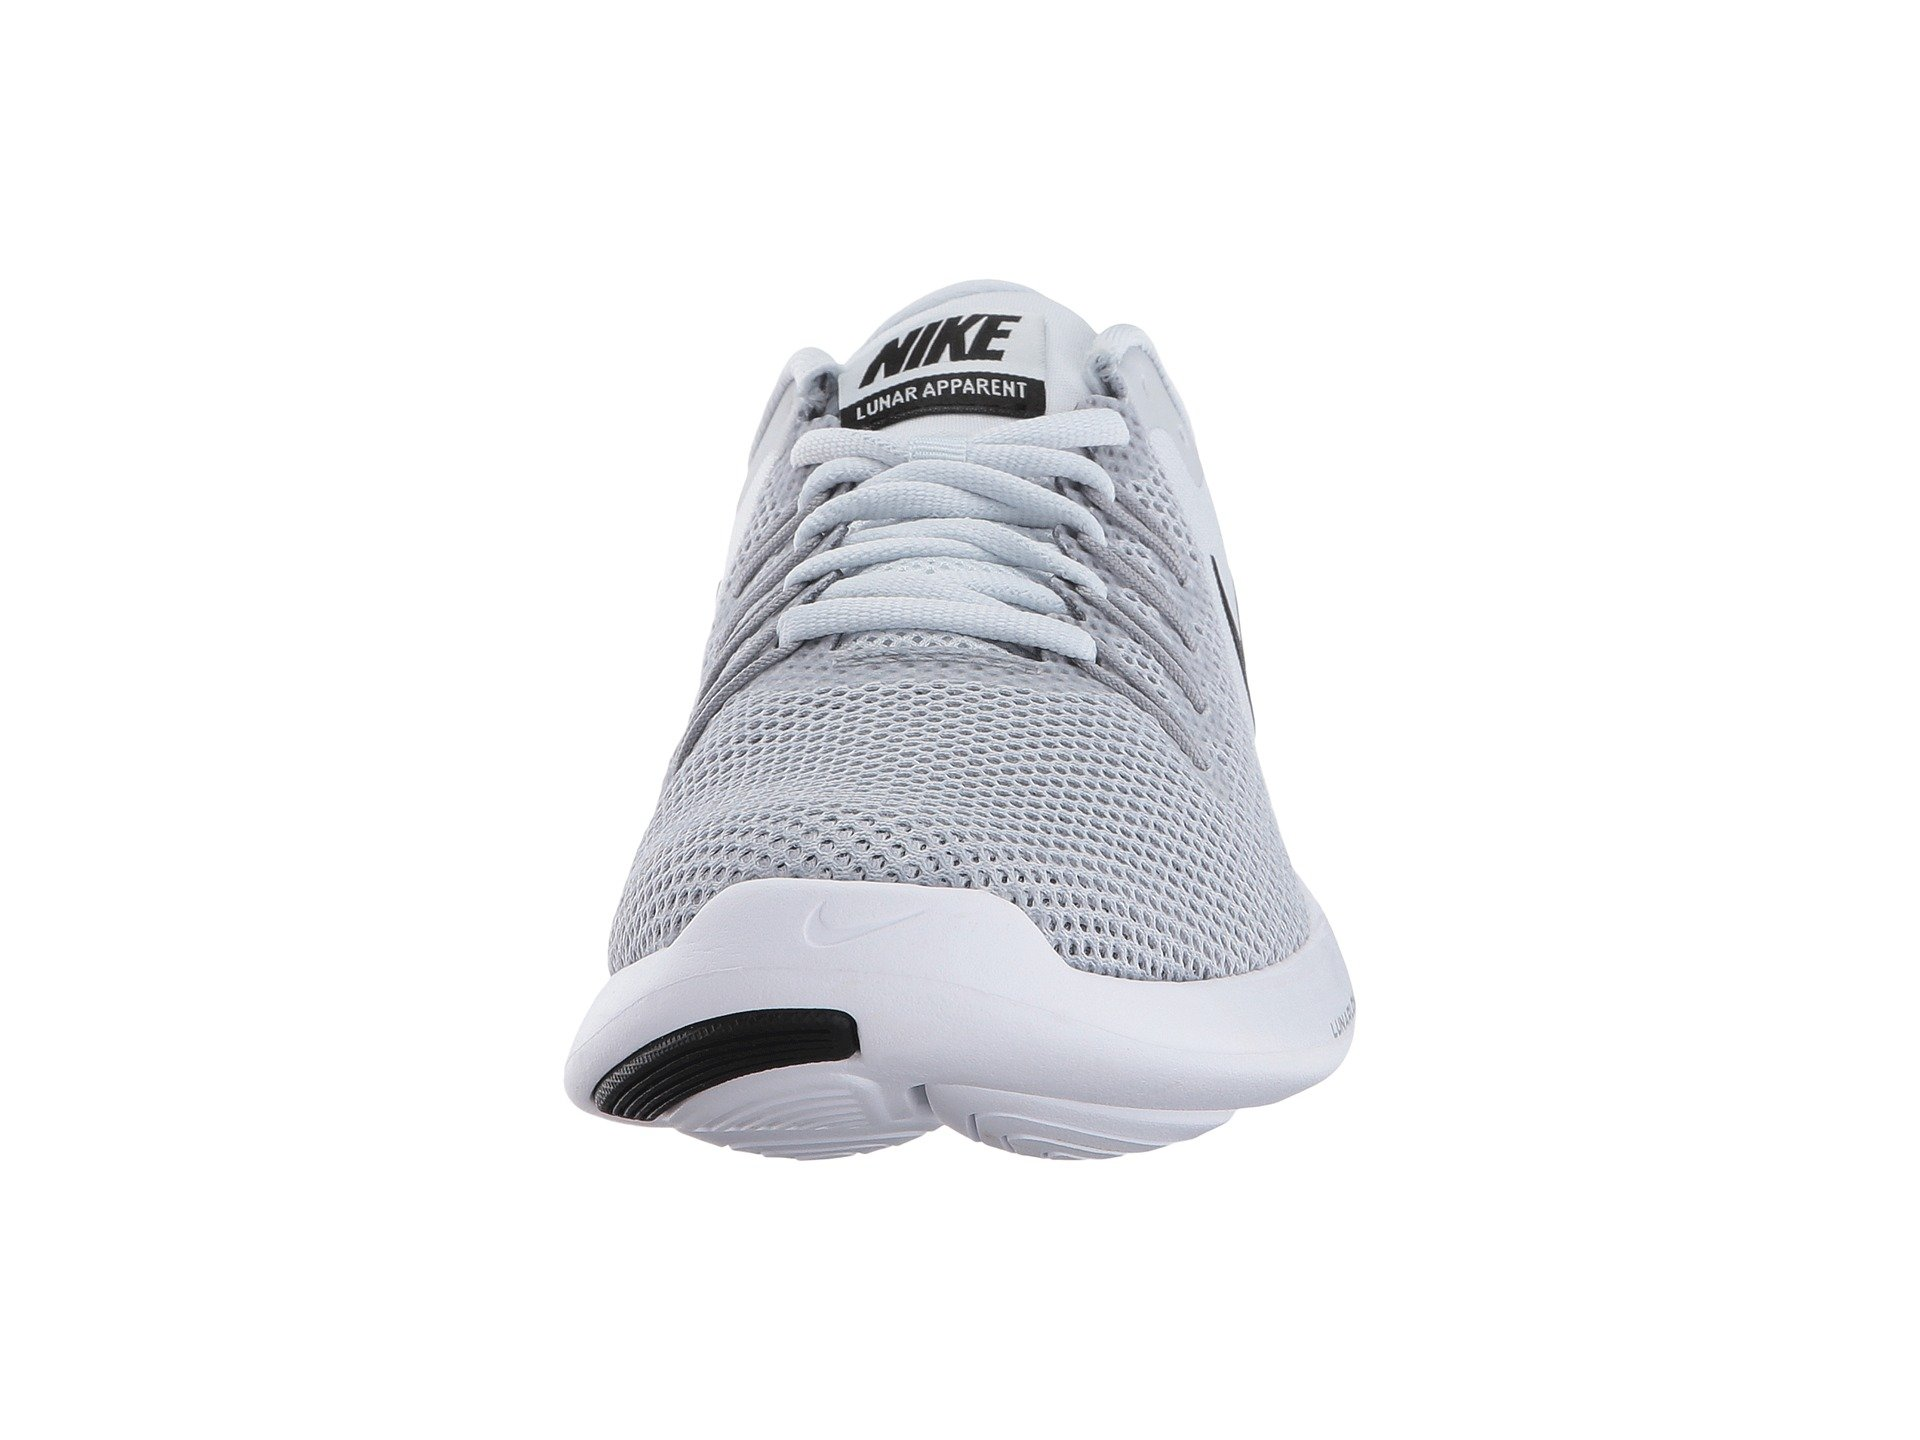 0f219b38983b Nike dunk sb pro low mm nike dunk sb pro low mm nike banners on the cheap  free shipping dunk banners nike dunk sb pro. sb dunk high